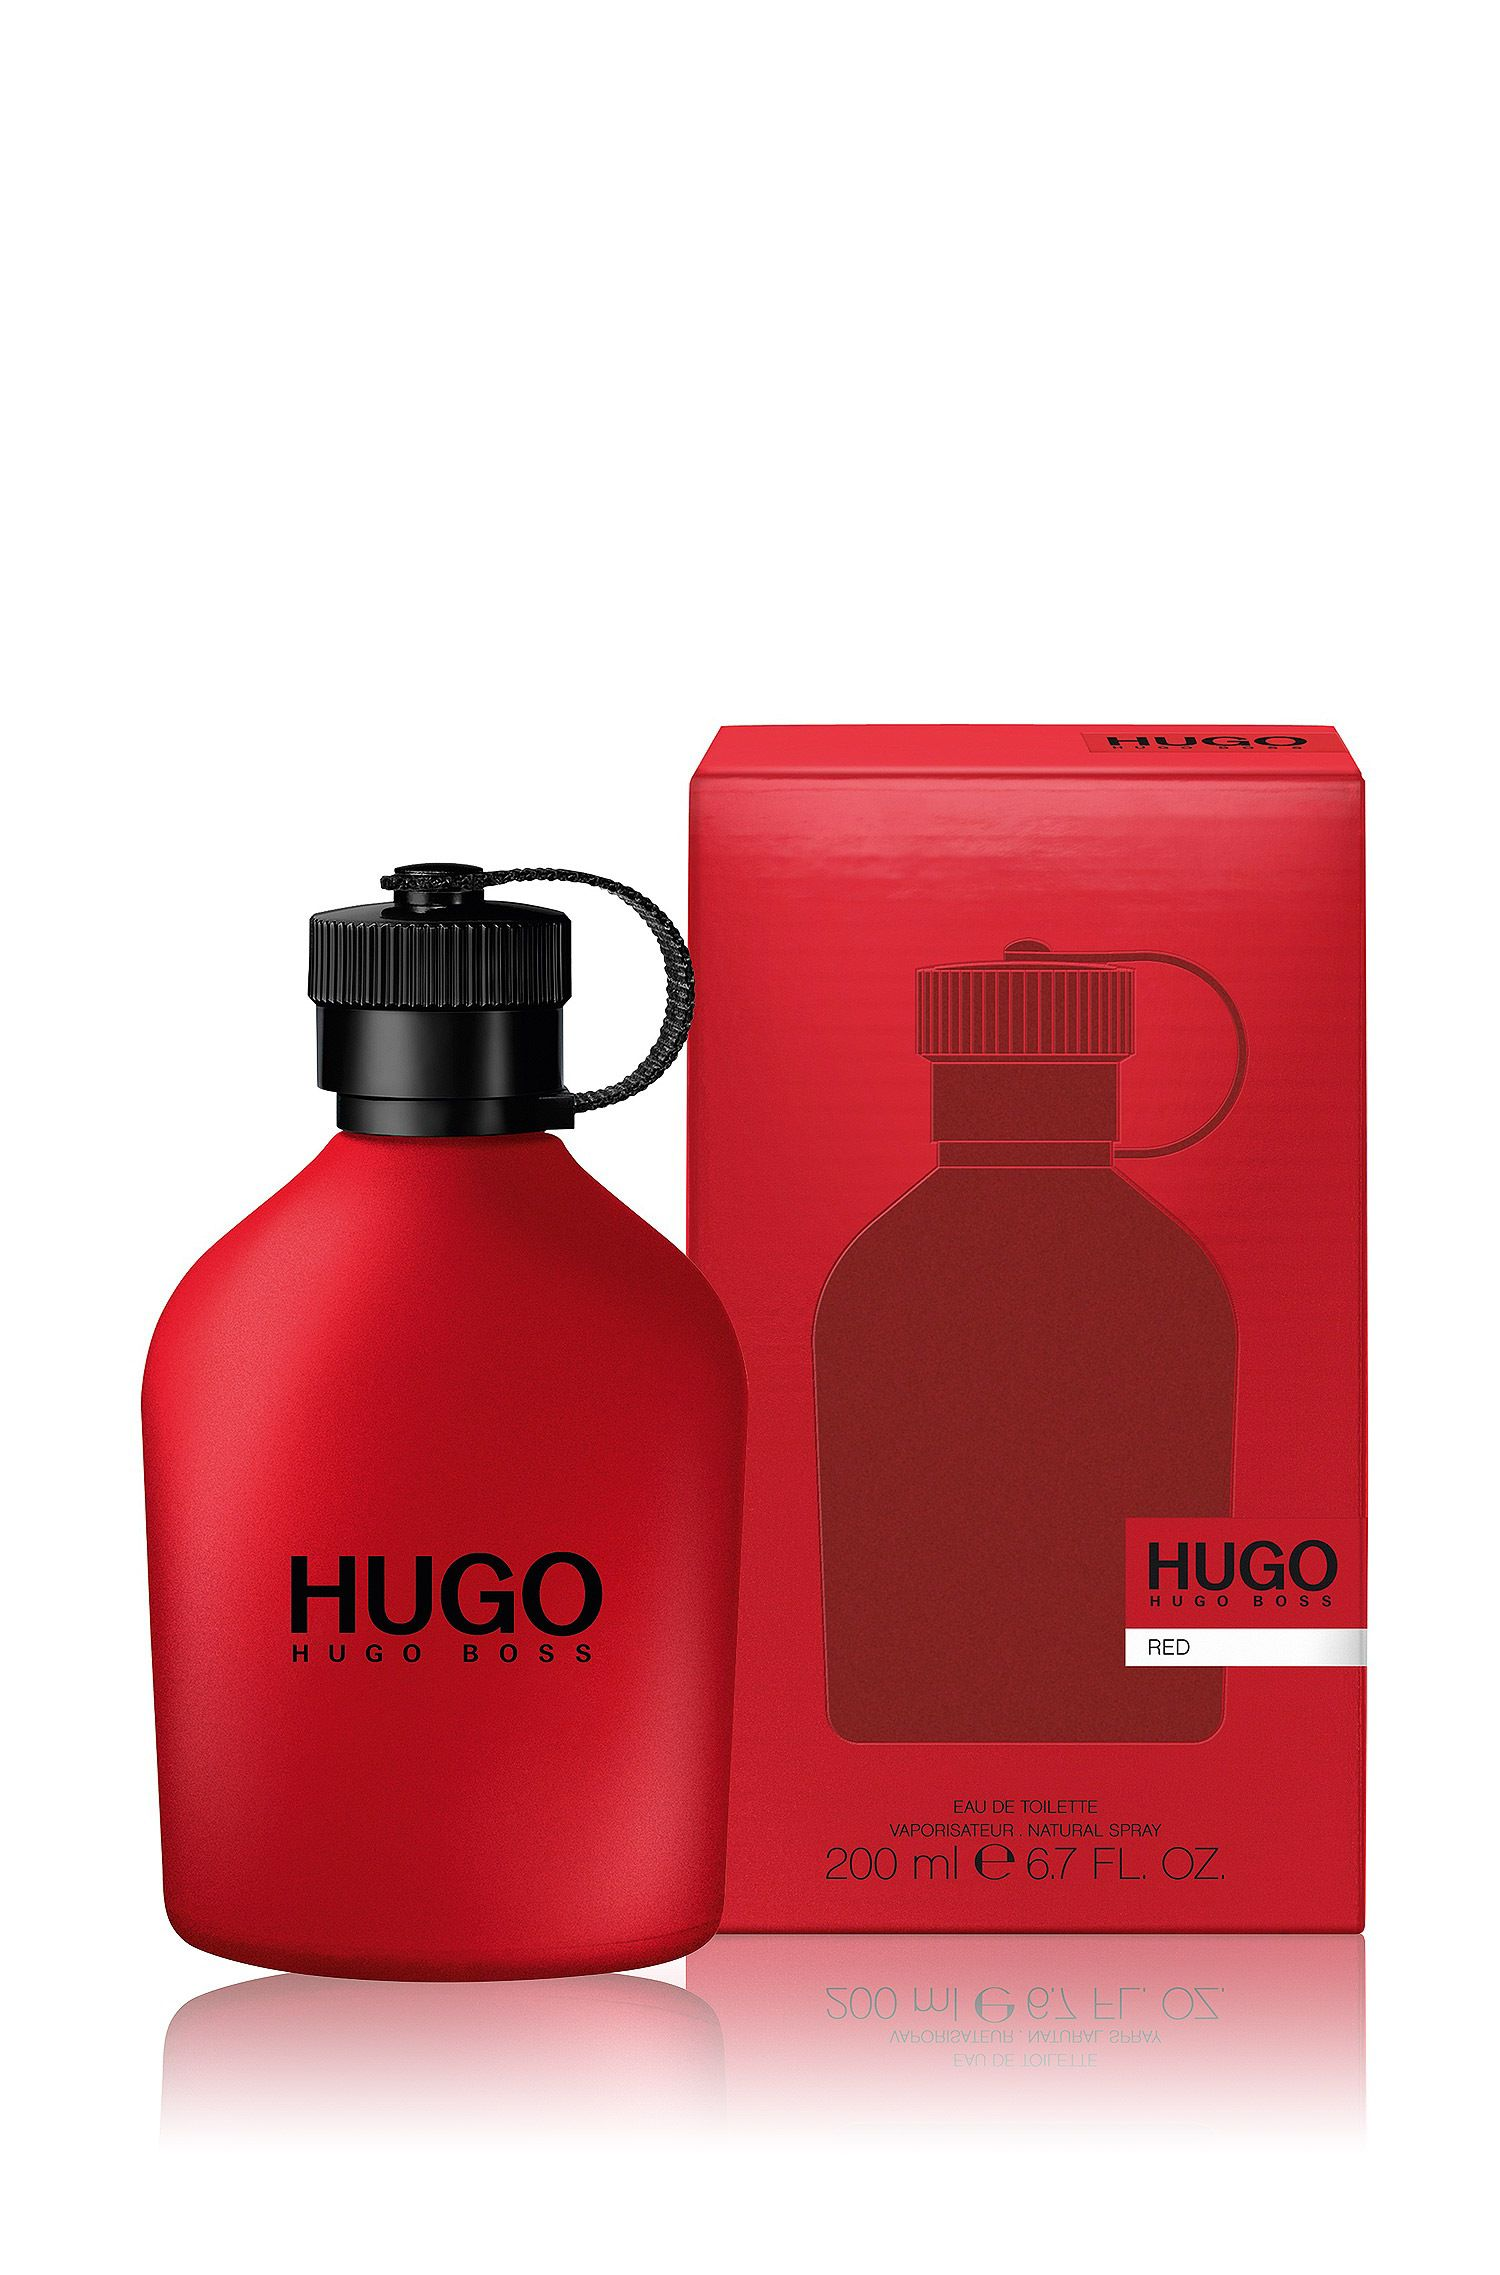 HUGO Red Eau de Toilette 200 ml